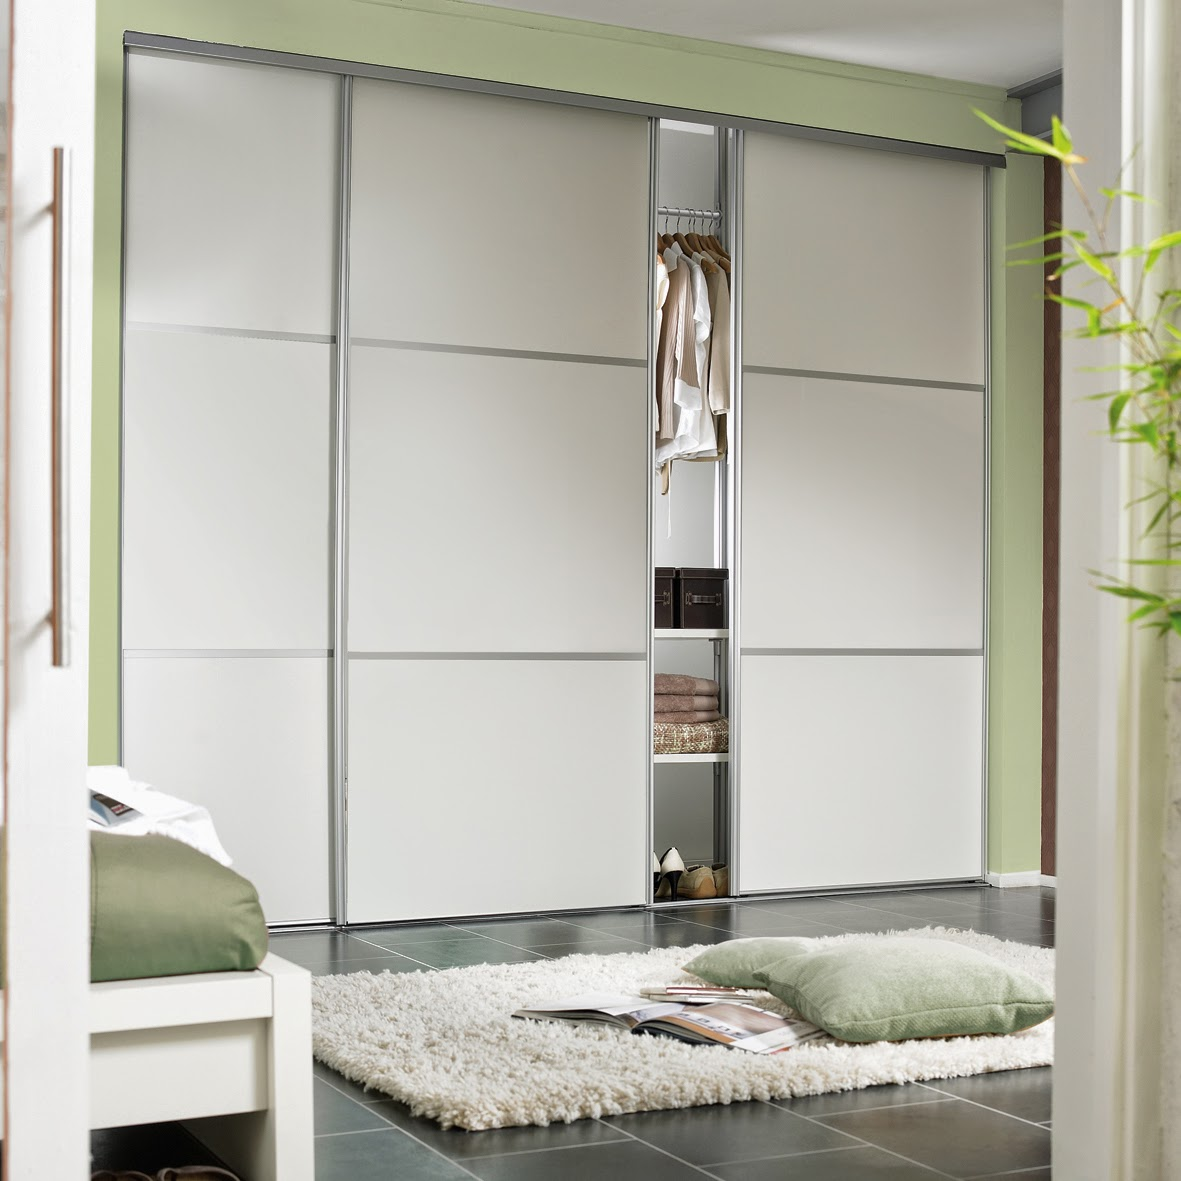 Sliding-wardrobe-doors-soft-white